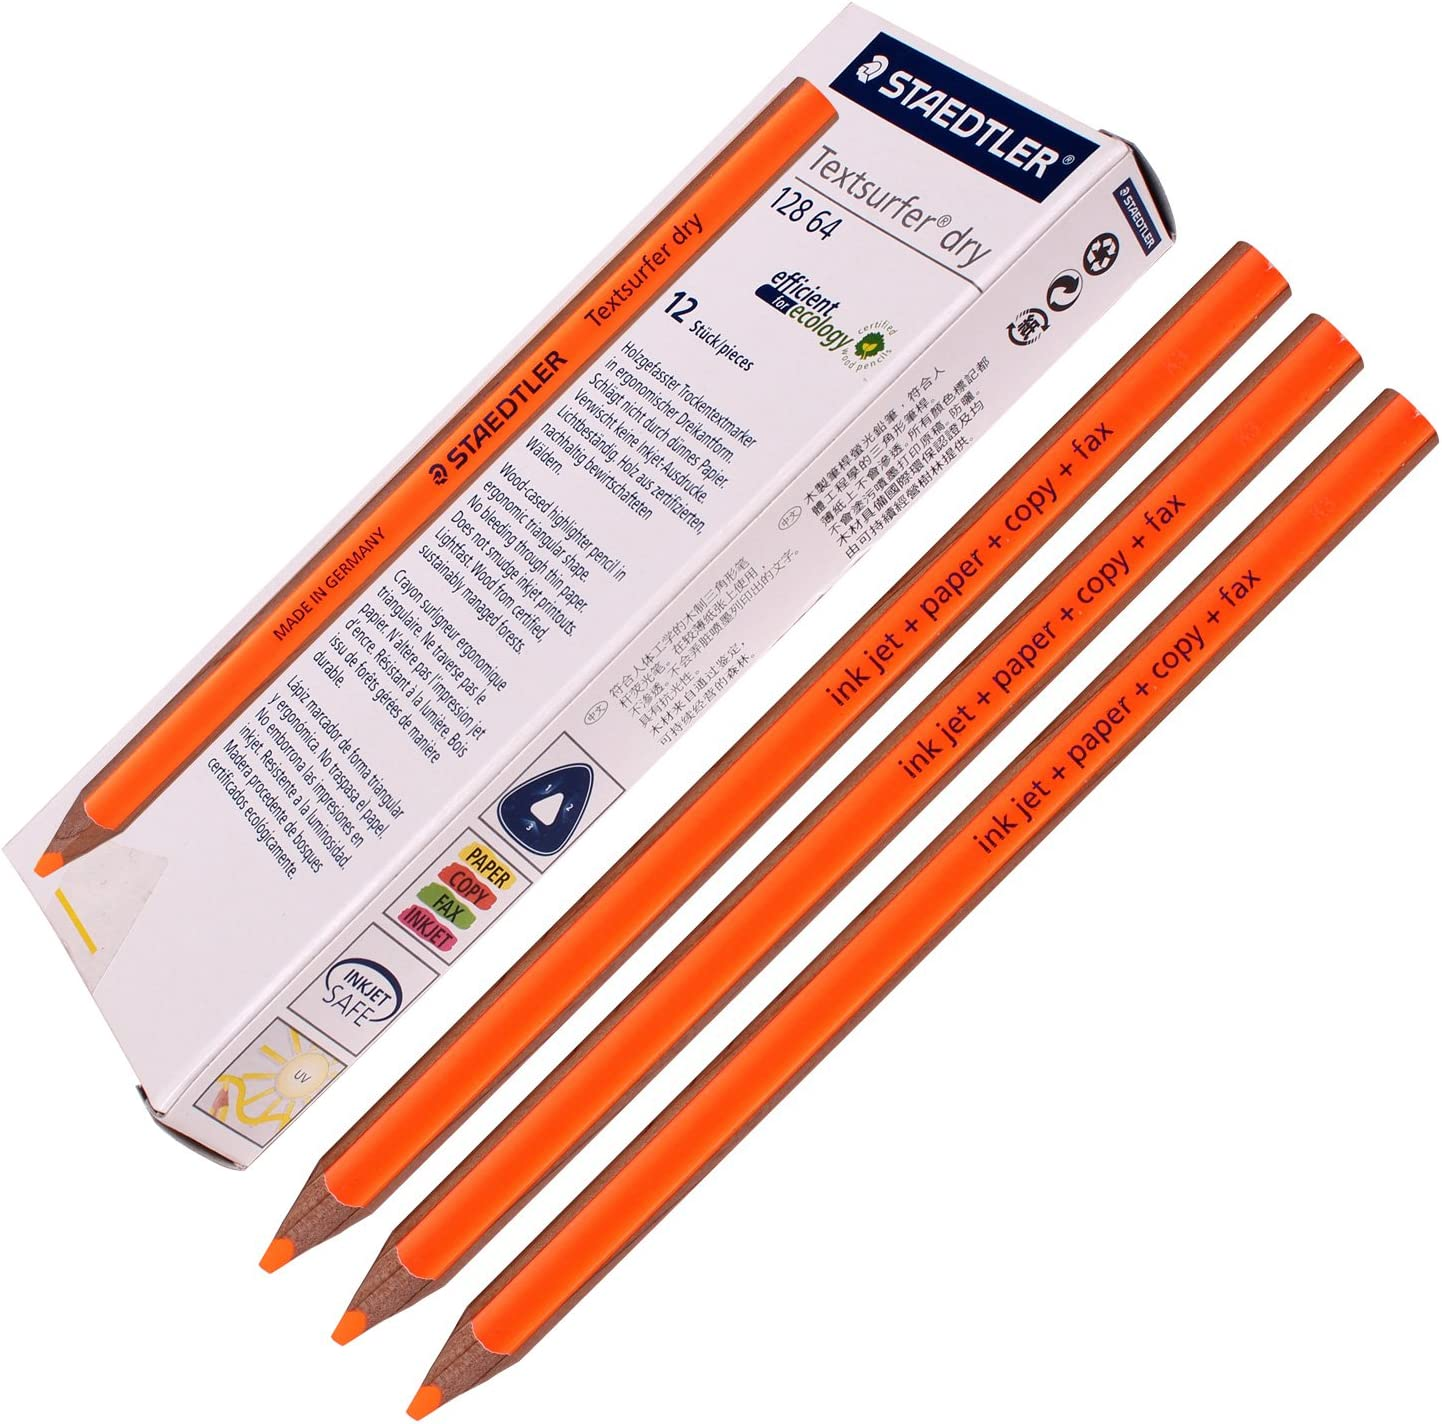 Staedtler Textsurfer Dry Atlanta Mall Highlighter OFFicial Pencil 64 128 Drawing W for